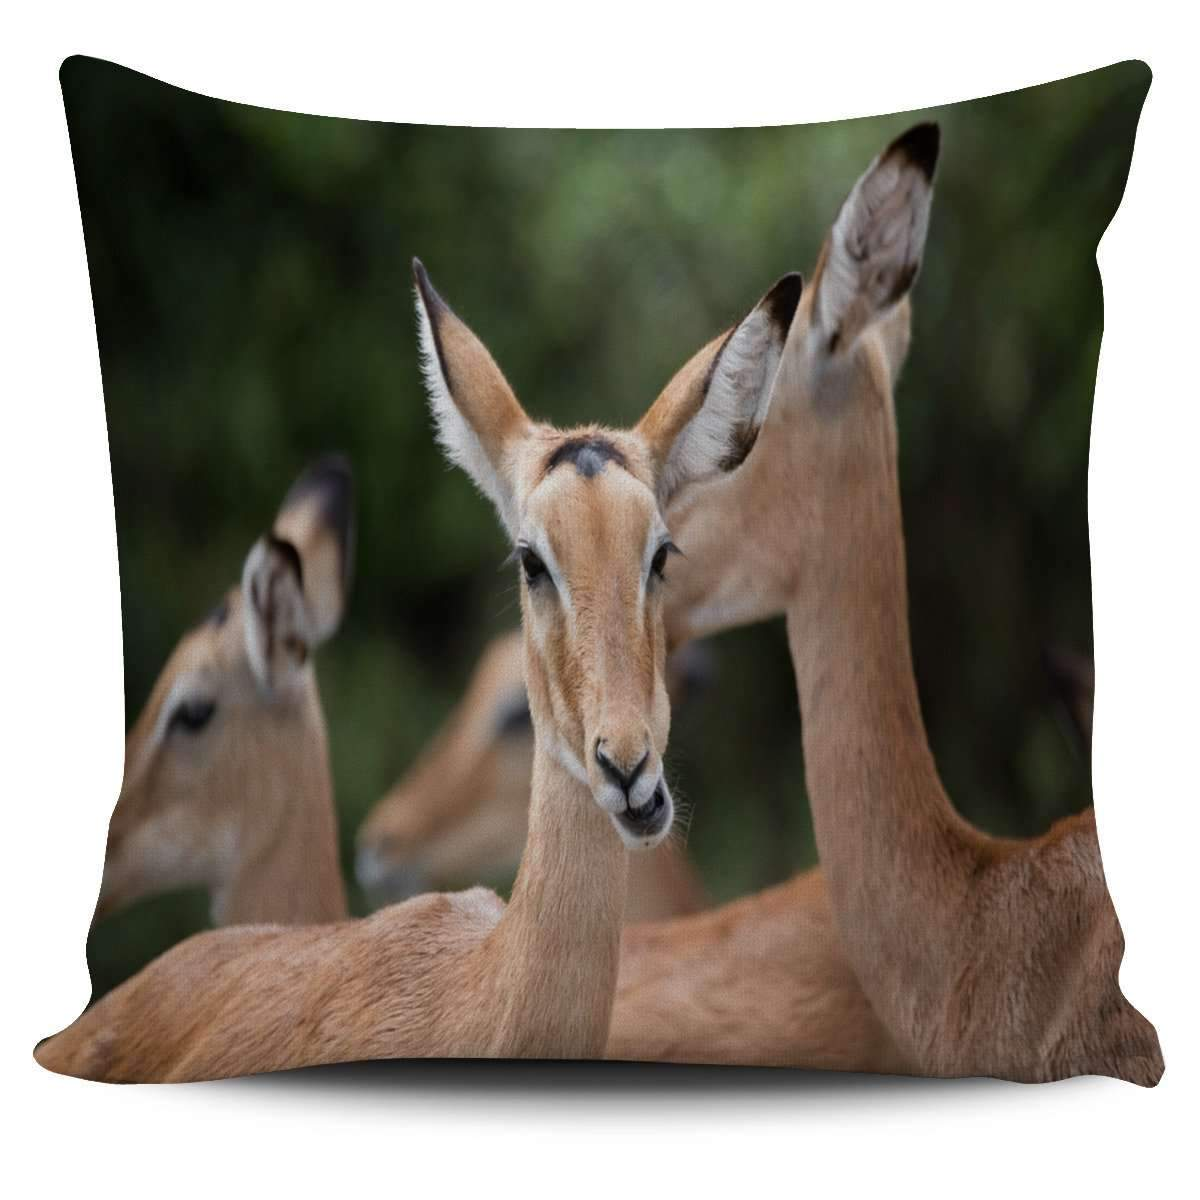 Deer Family Green Pillow Case Umisfashion Store